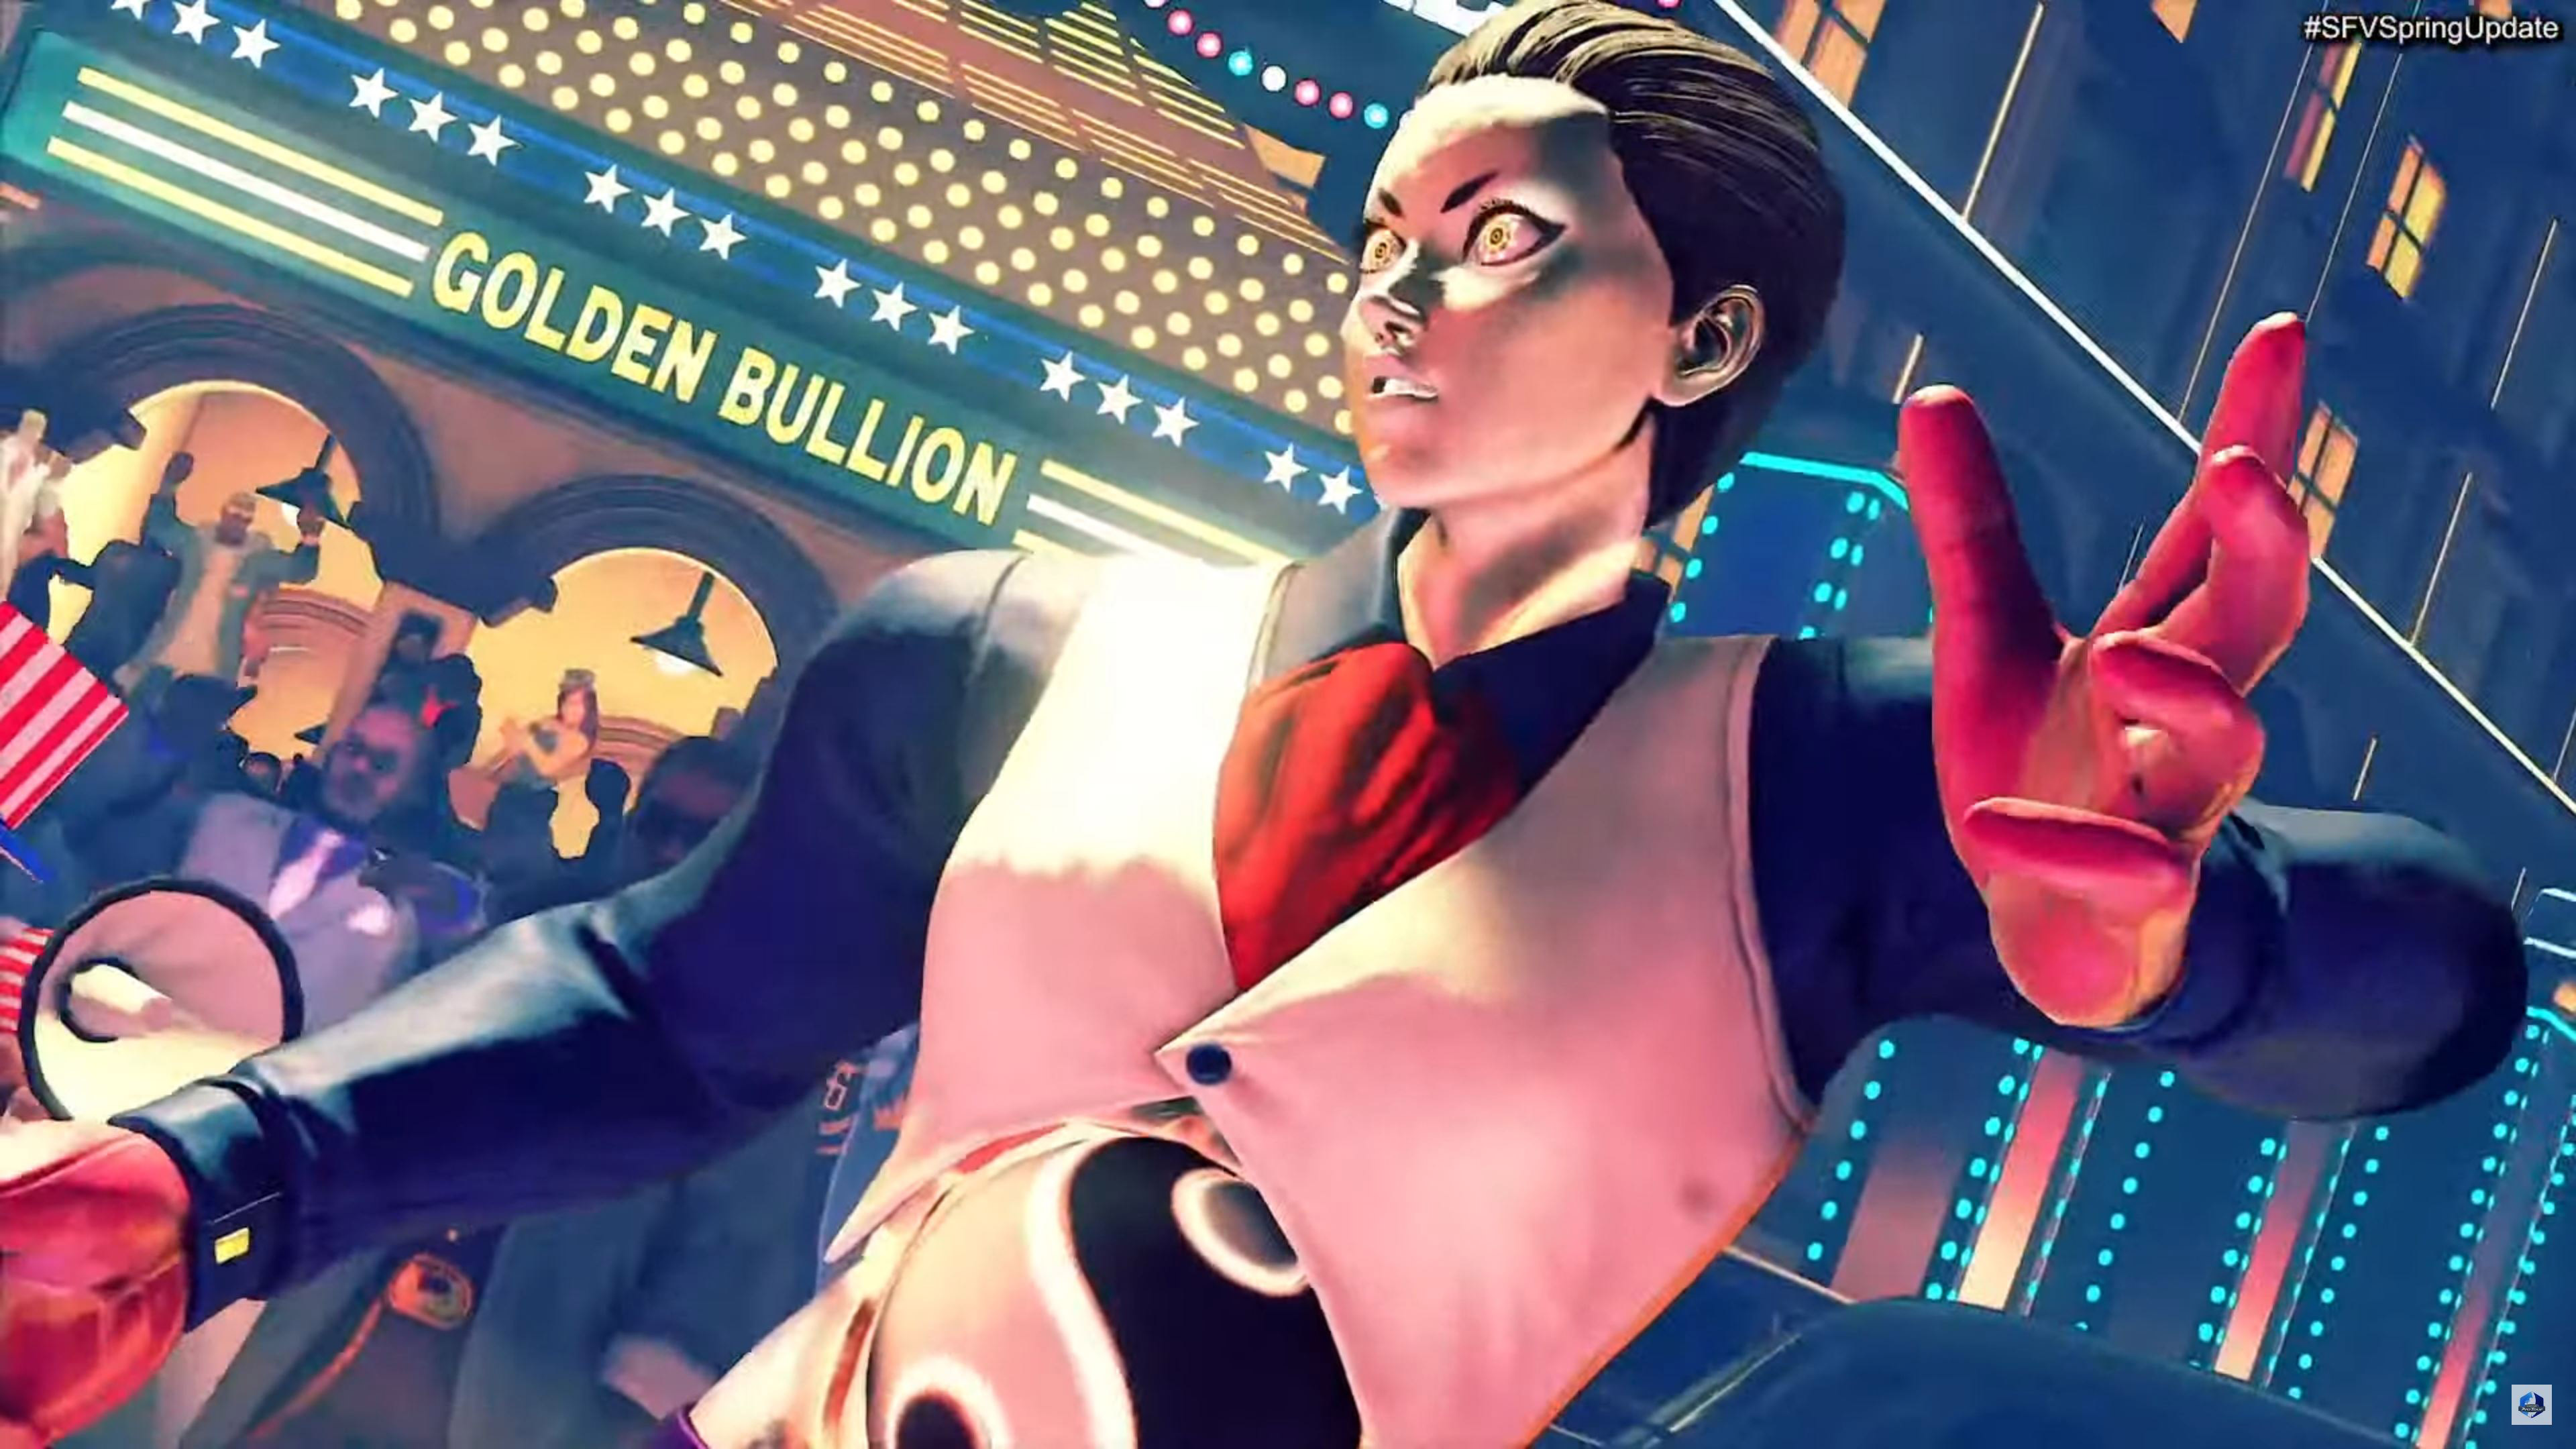 SF5 Pro Costumes  3 out of 6 image gallery